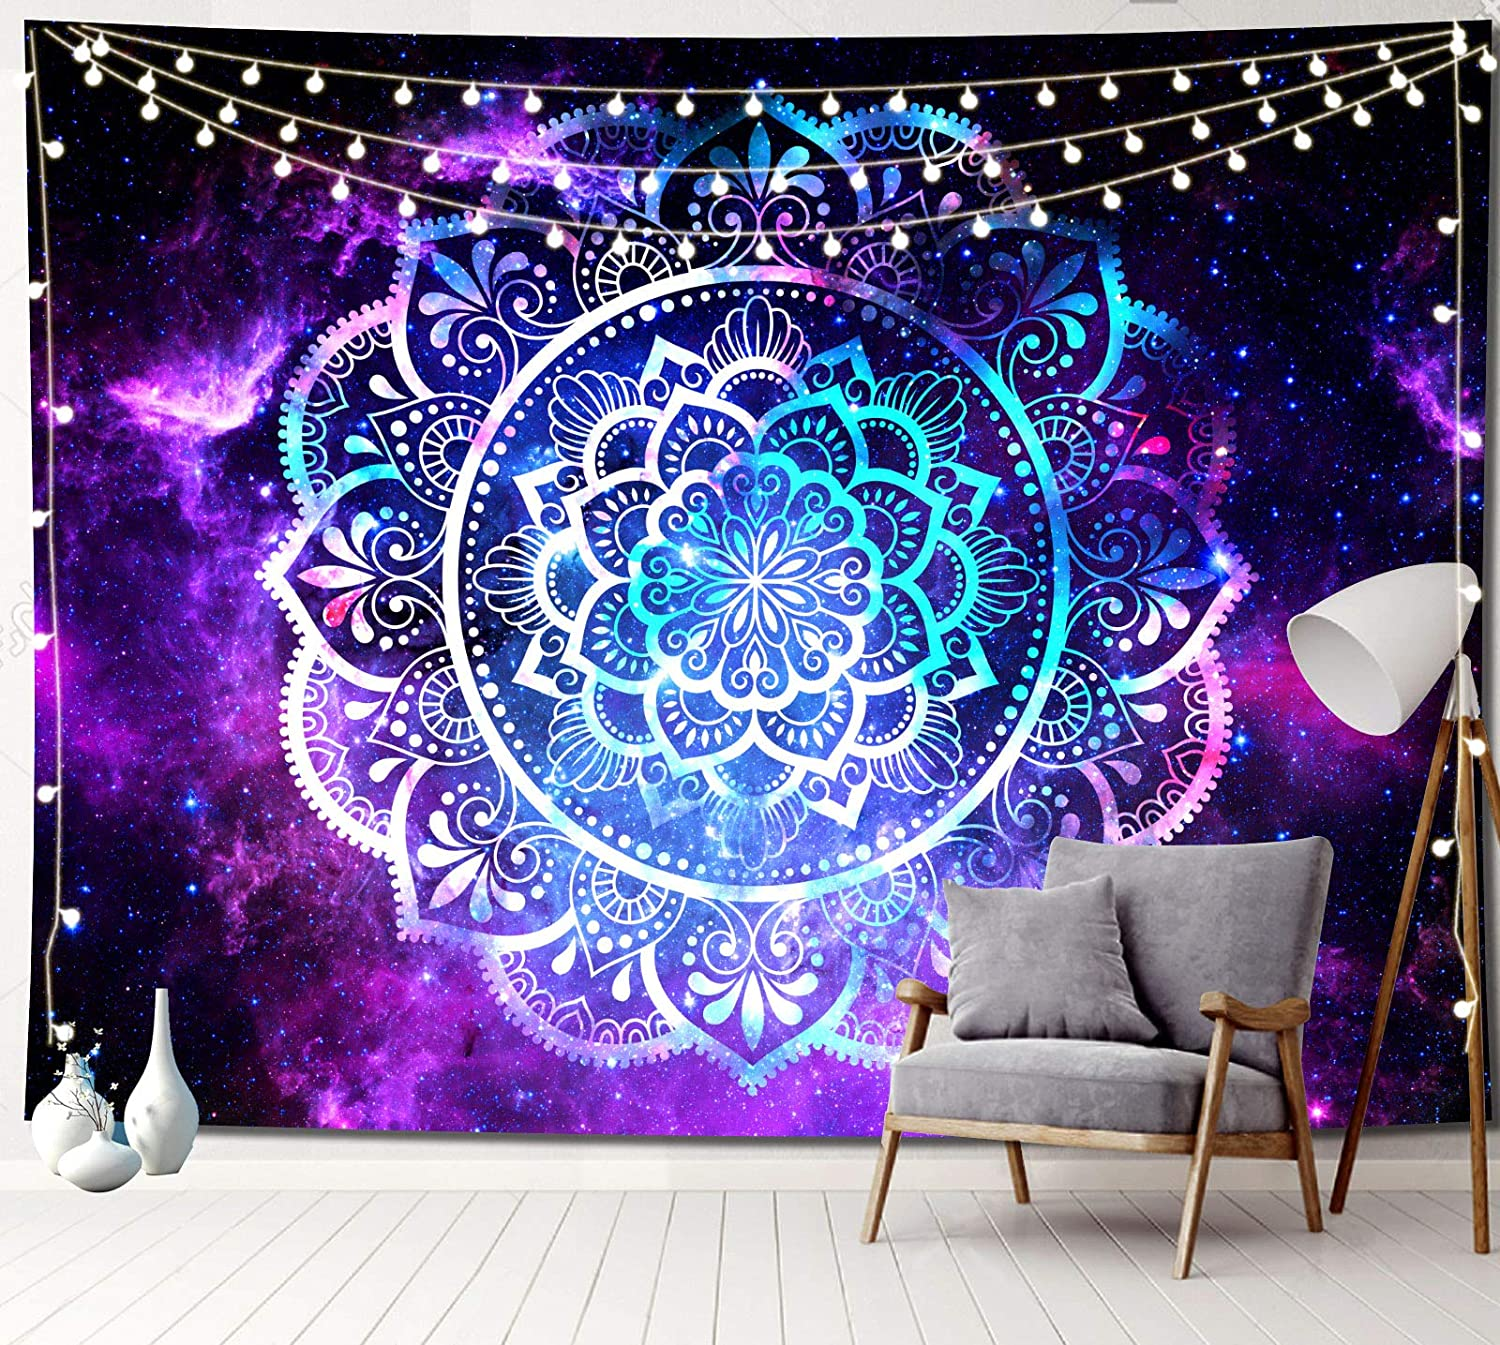 Sosolong Mandala Tapestry Aesthetic Galaxy Max 72% OFF Surprise price Tape